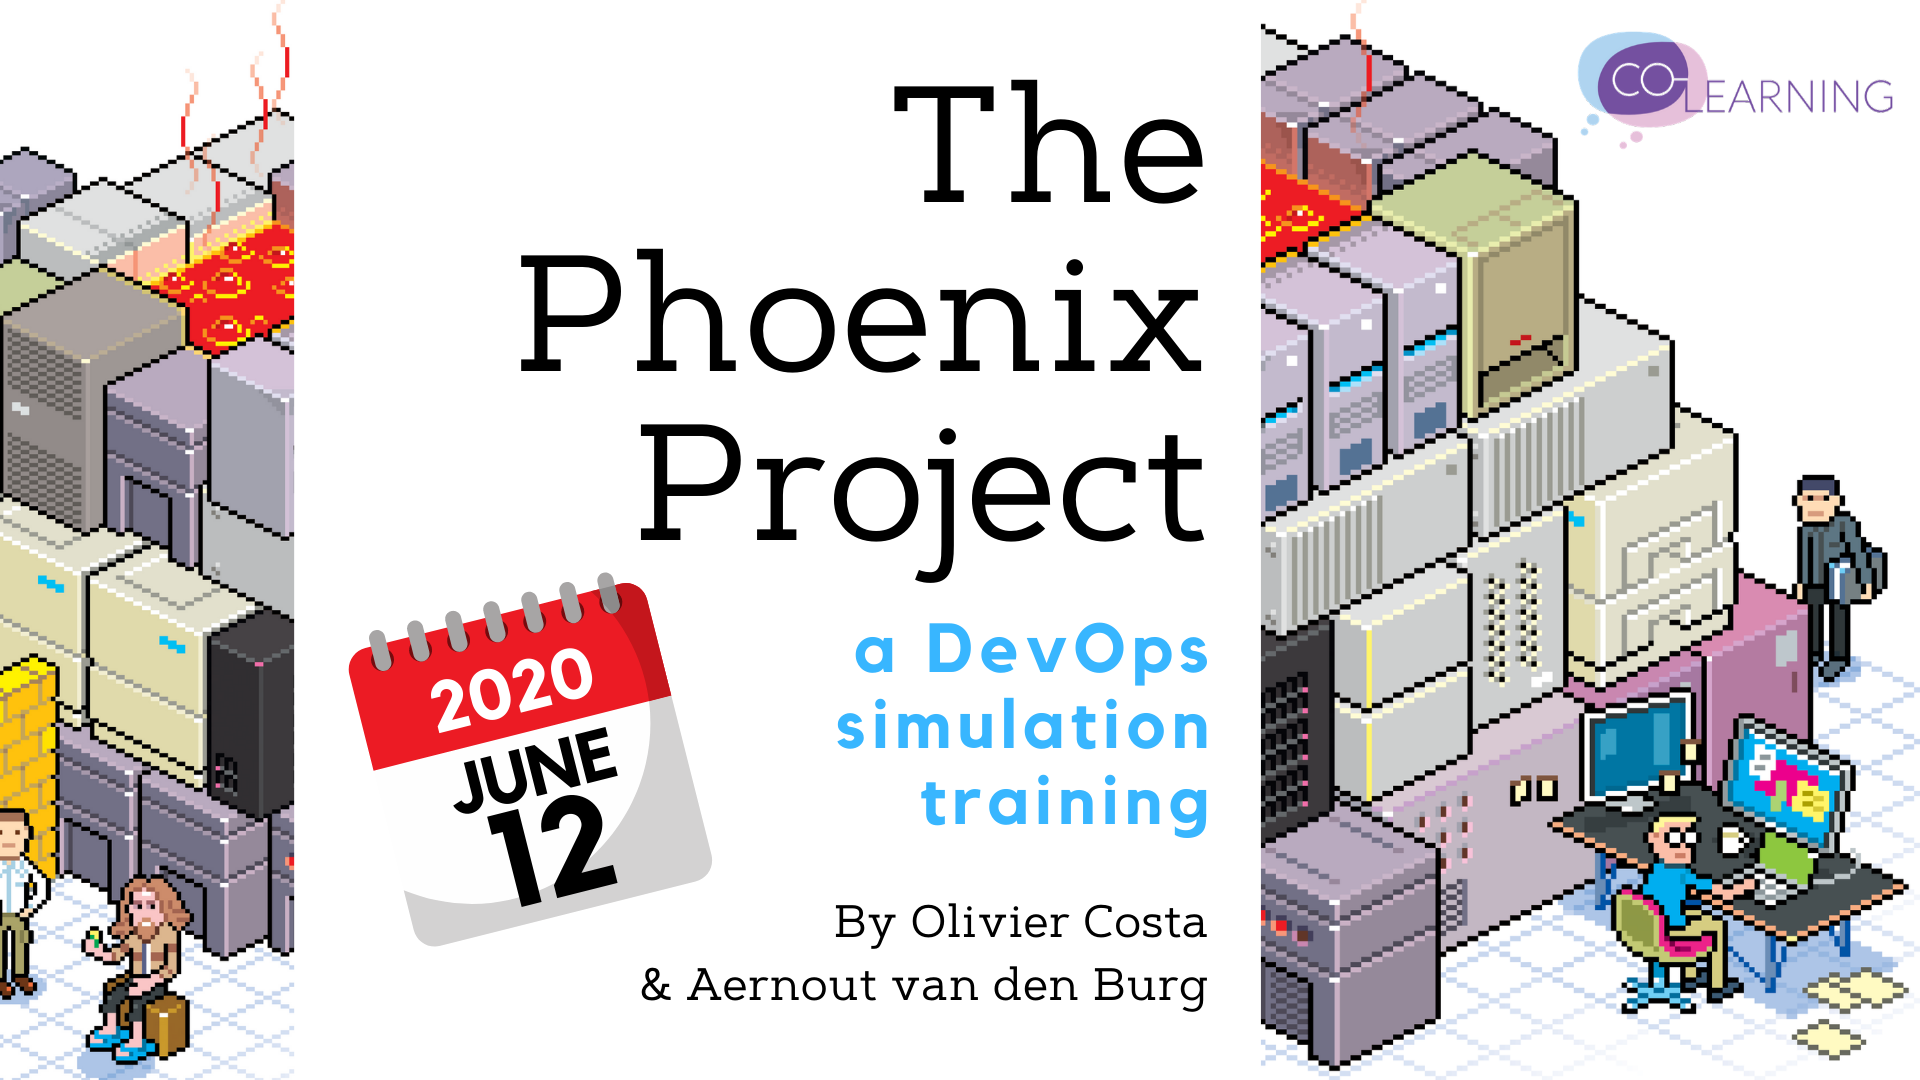 The Phoenix Project: a DevOps simulation training